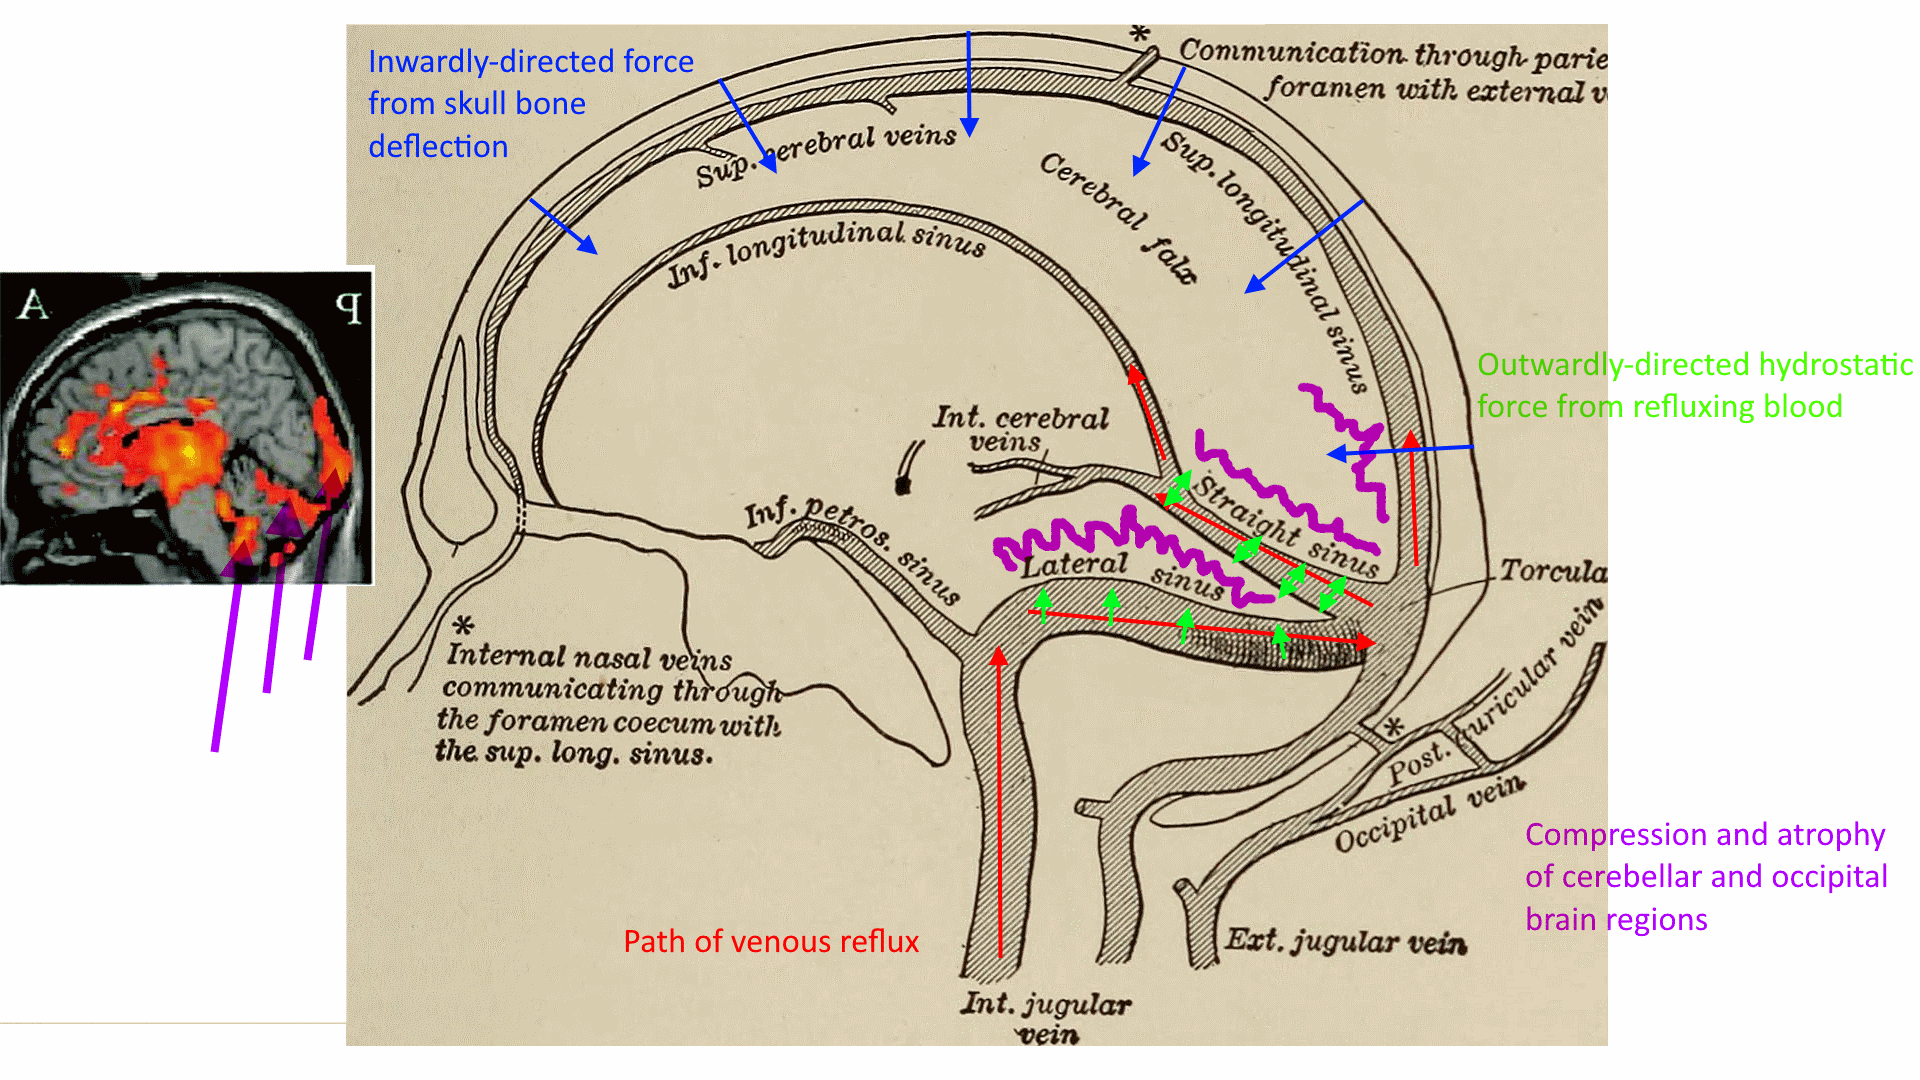 compression and atrophy of occipital and cerebellar regions